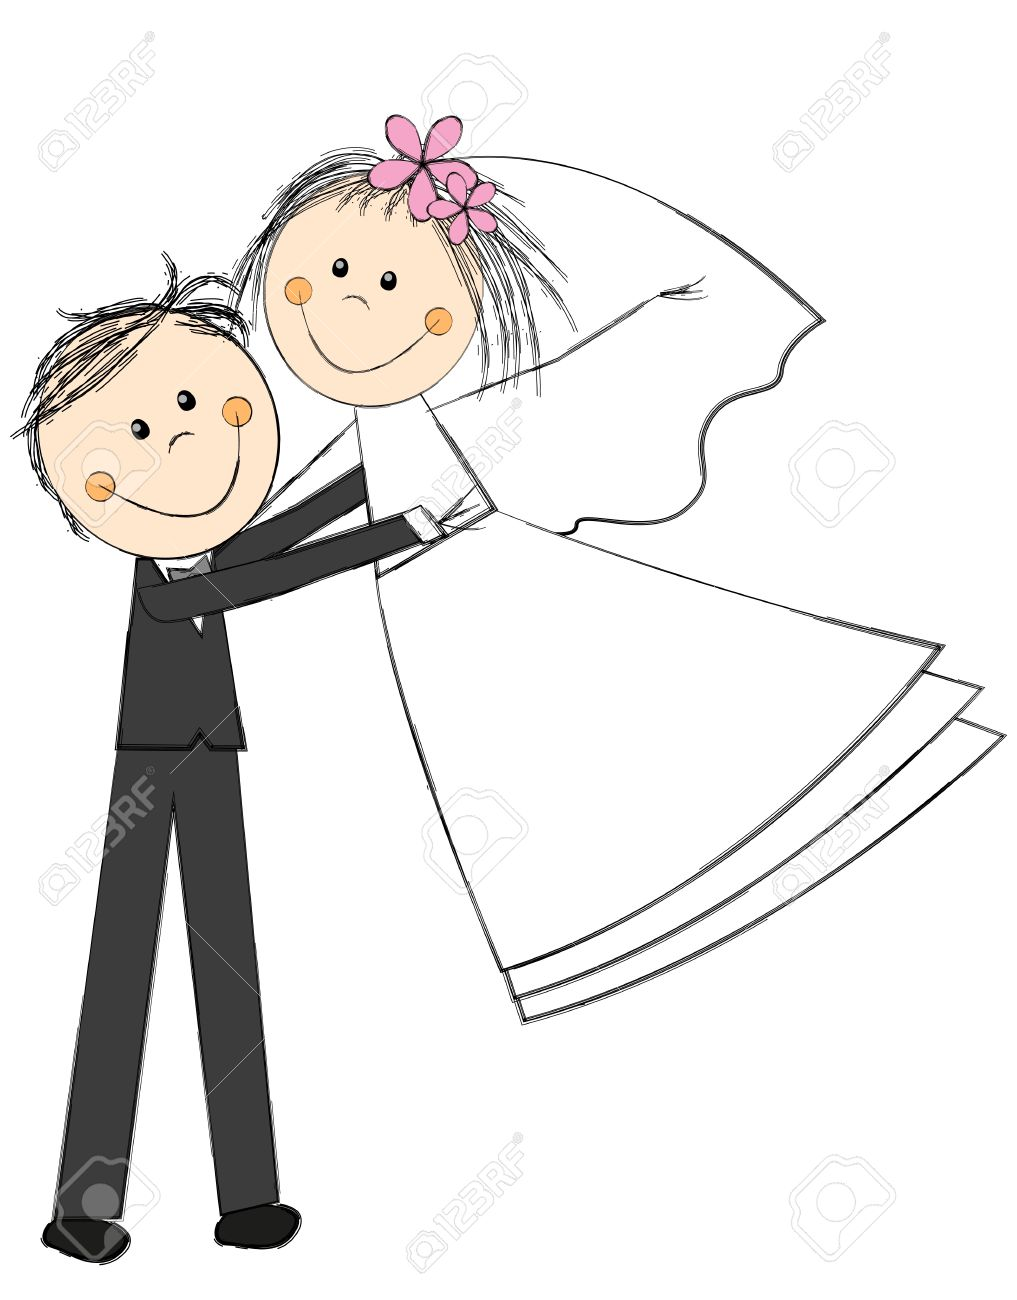 Happy Wedding Couple On White Royalty Free Cliparts Vectors And Stock Illustration Image 19755518